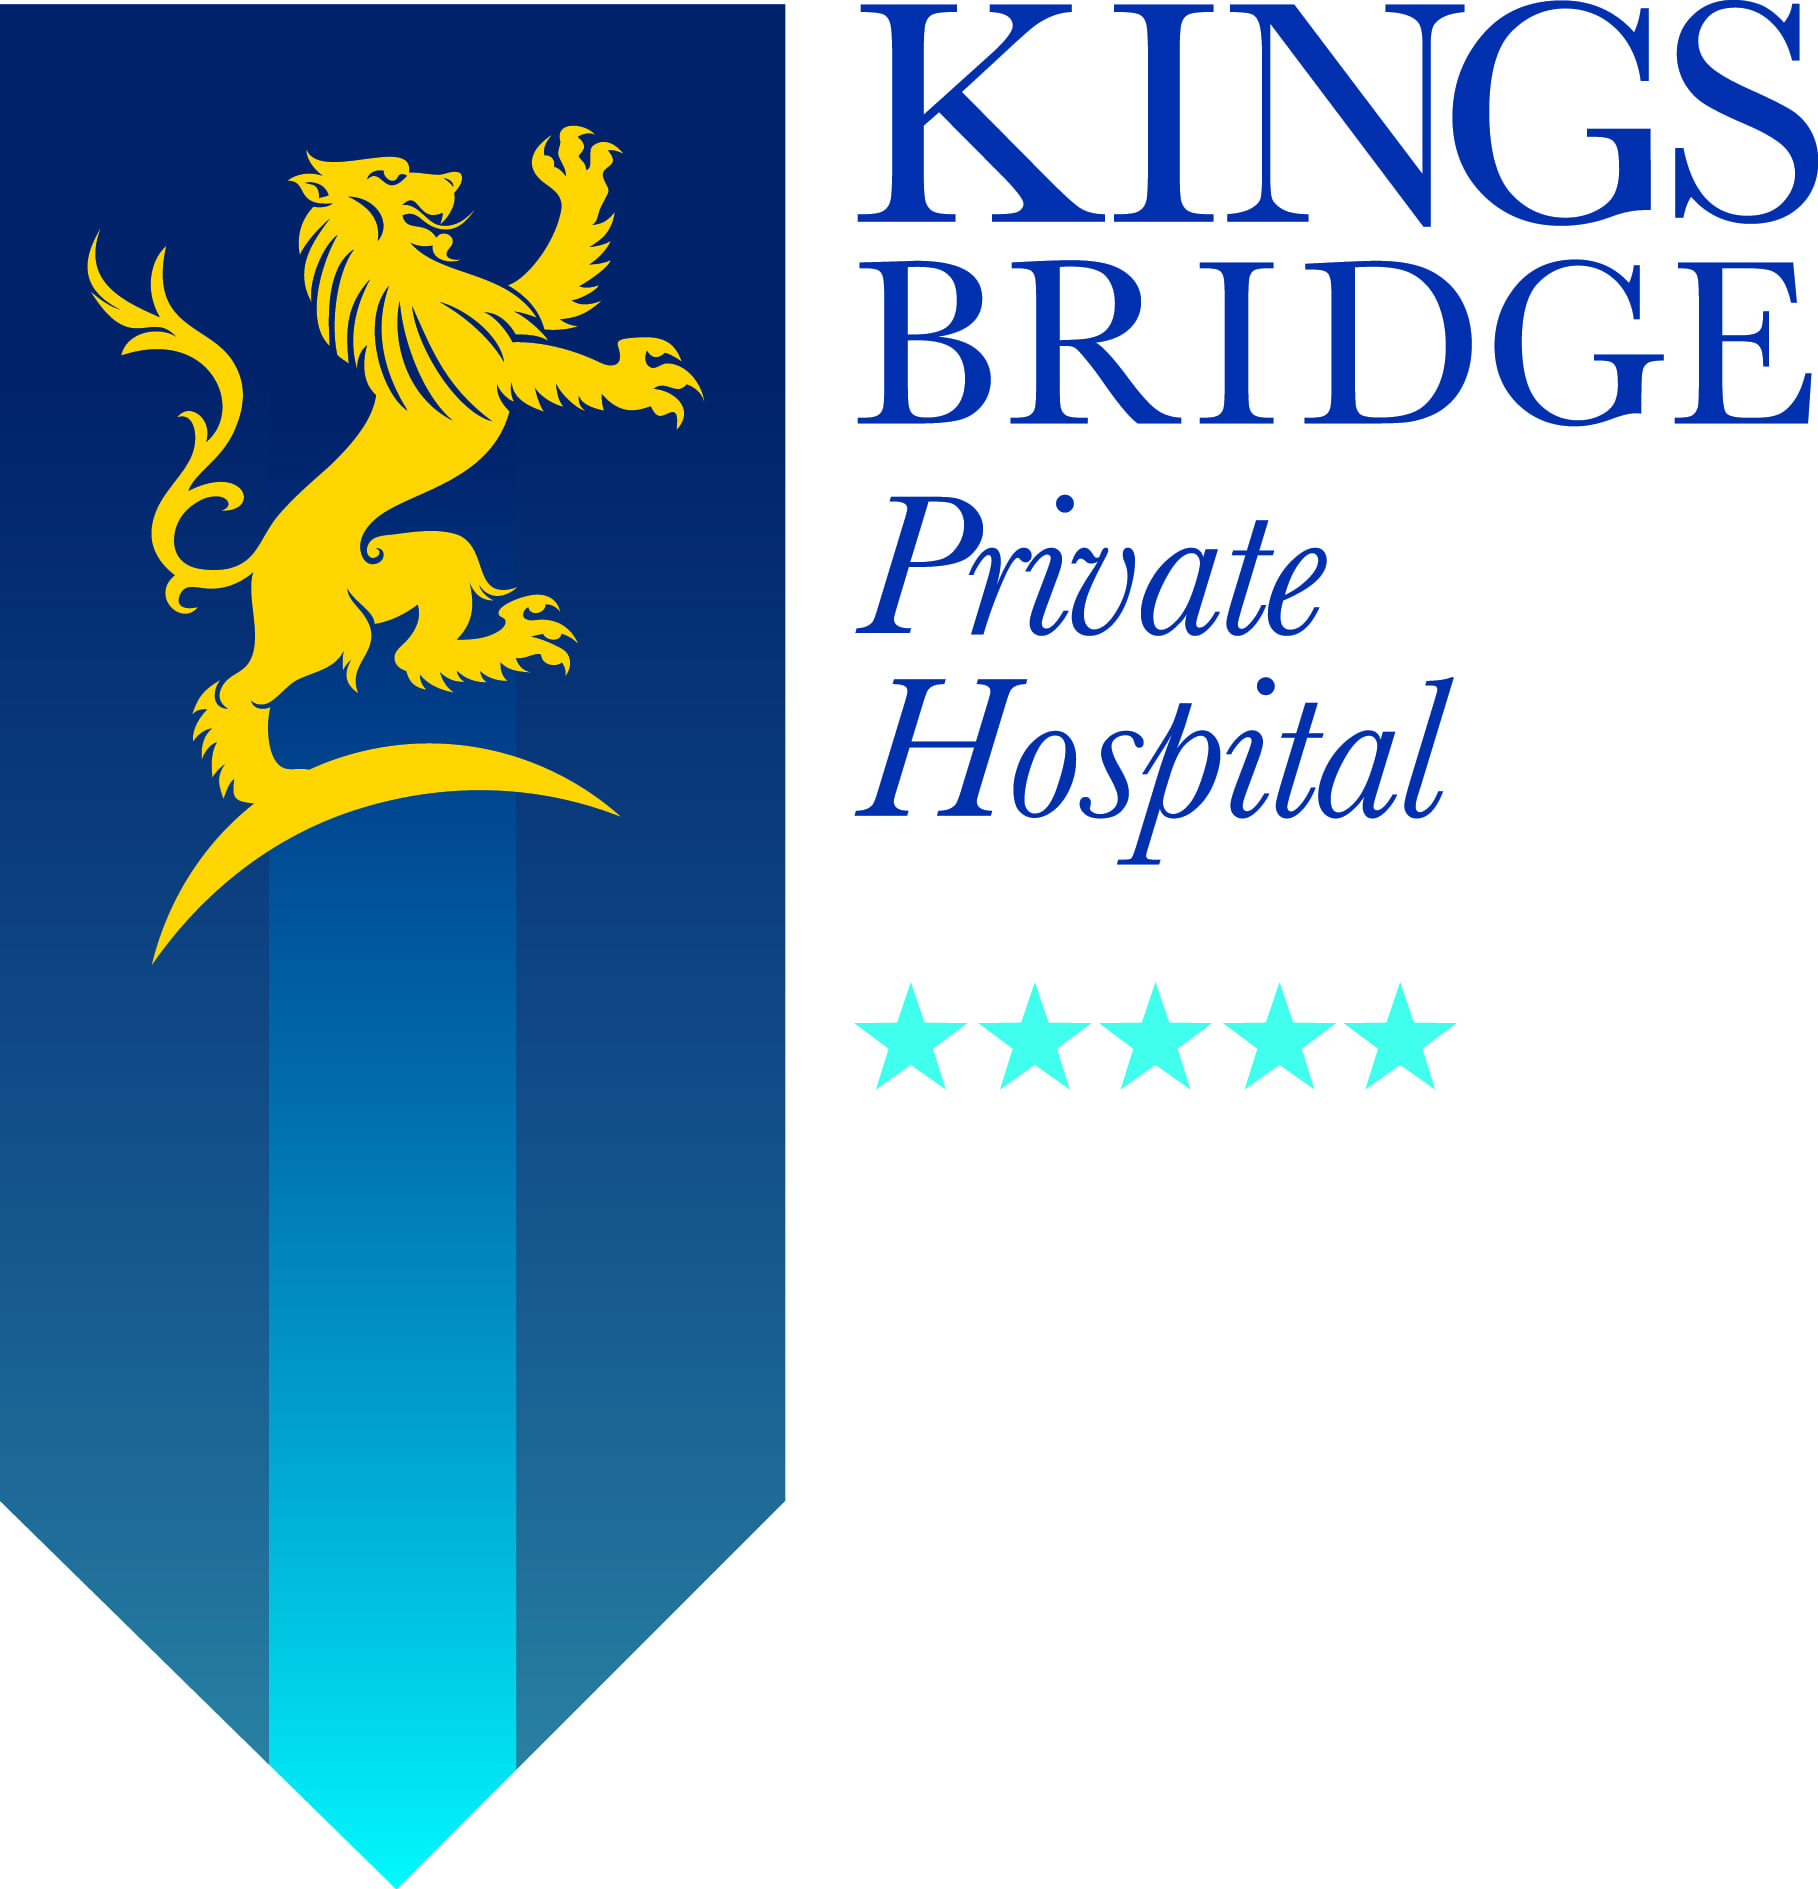 Kingsbridge Private Hospital Logo.jpg